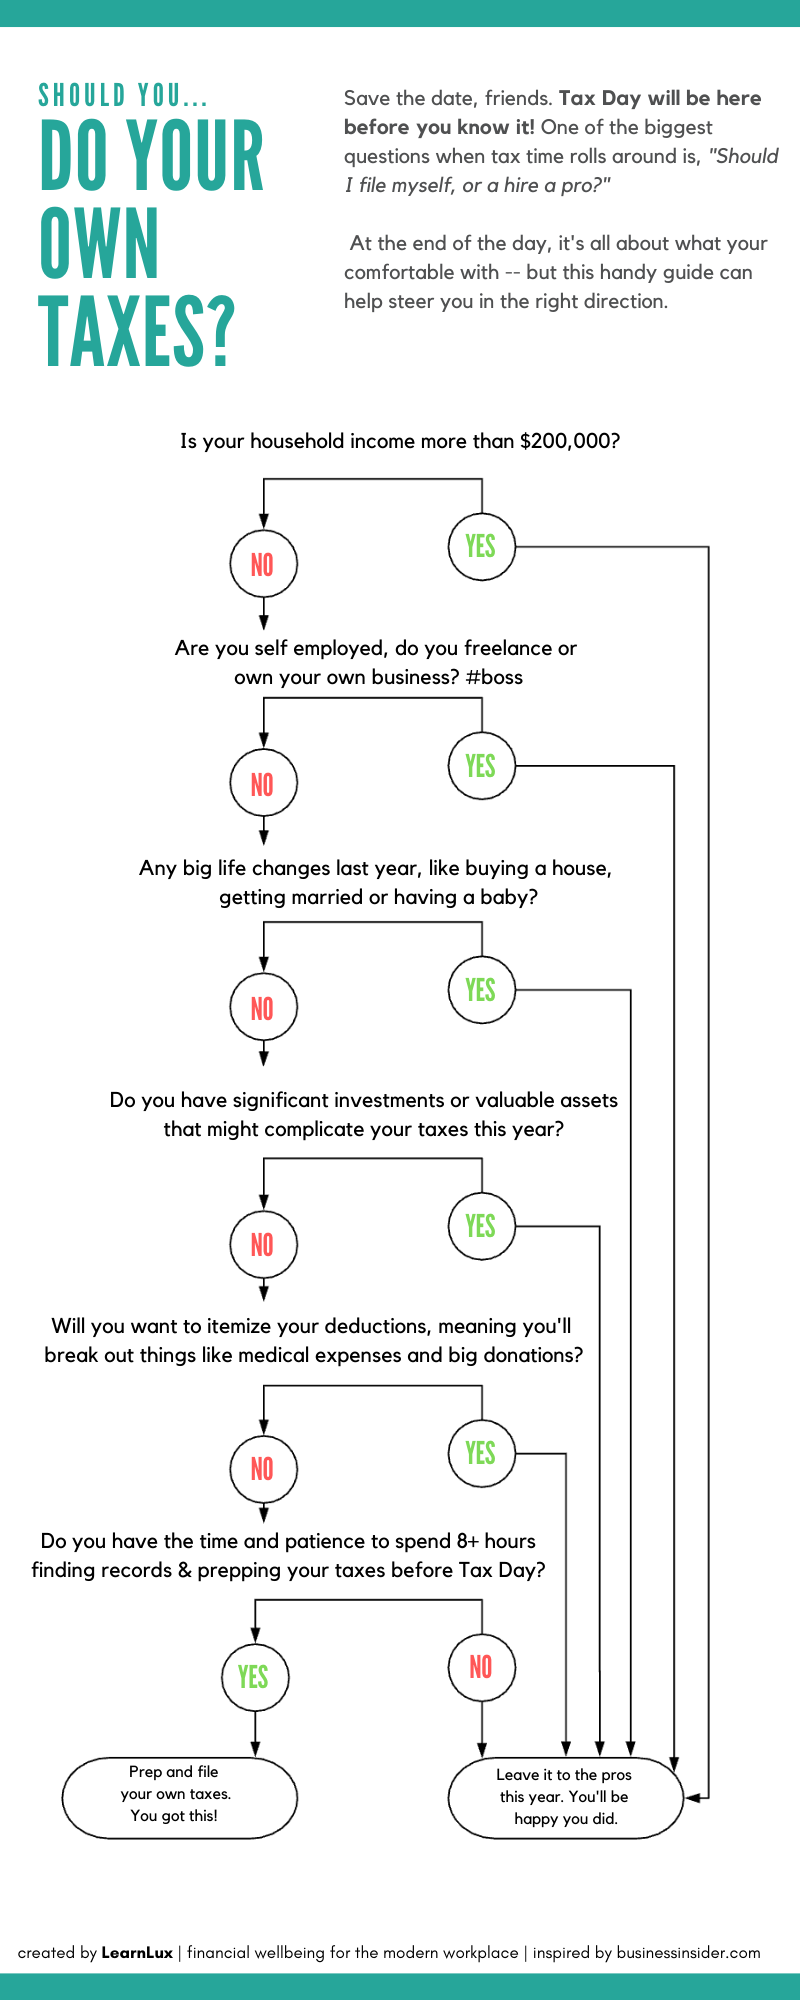 should you do your own taxes_ v2